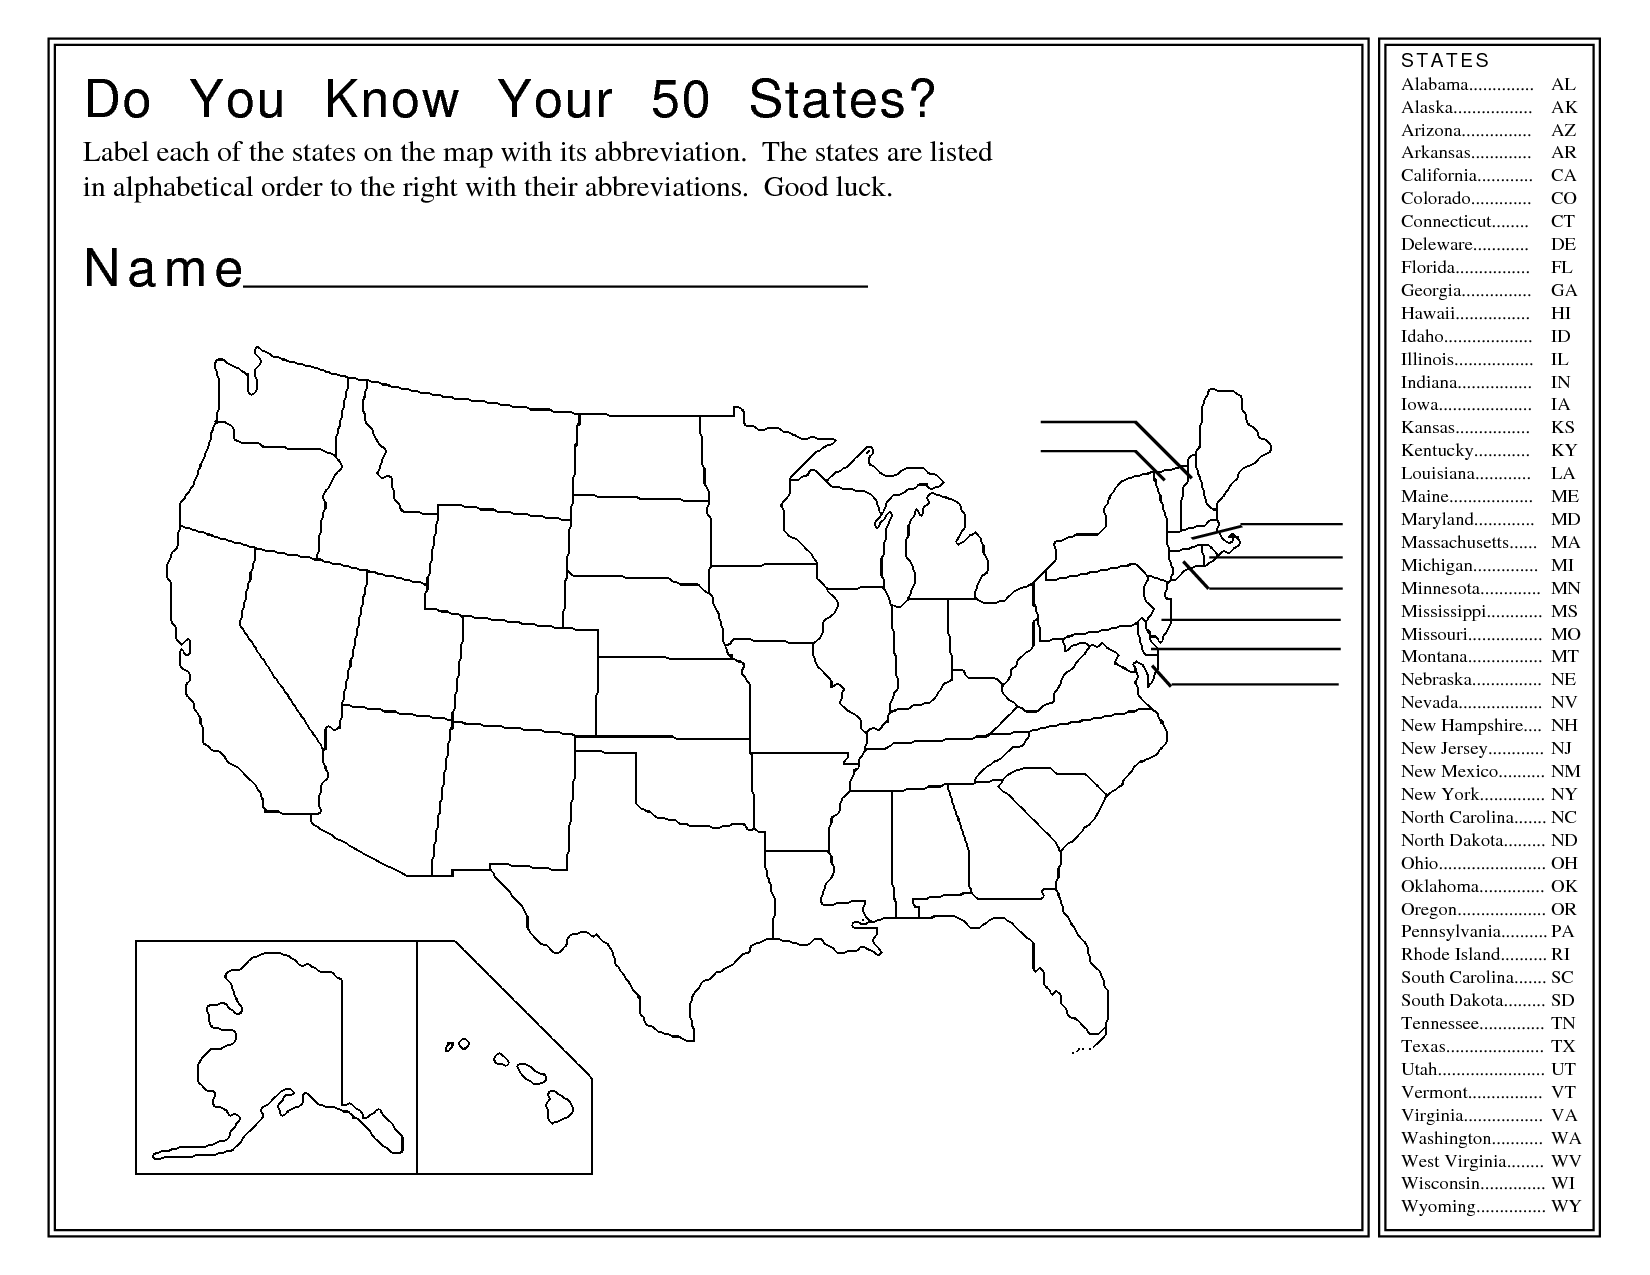 United+States+Map+Activity+Worksheet | Teacher Life | Us ... on all 50 states map printable, virginia worksheets printable, time worksheets printable, continents worksheets printable, united states map with state names printable, veterans day worksheets printable, tennessee landform map printable, my state report printable, halloween worksheets printable, southern states map printable, simple united states map printable, georgia worksheet printable, united states map test printable, 50 states worksheets printable, georgia map outline printable, us historical documents printable, us death certificate printable, apple worksheets printable, world map worksheet printable, state abbreviations map printable,